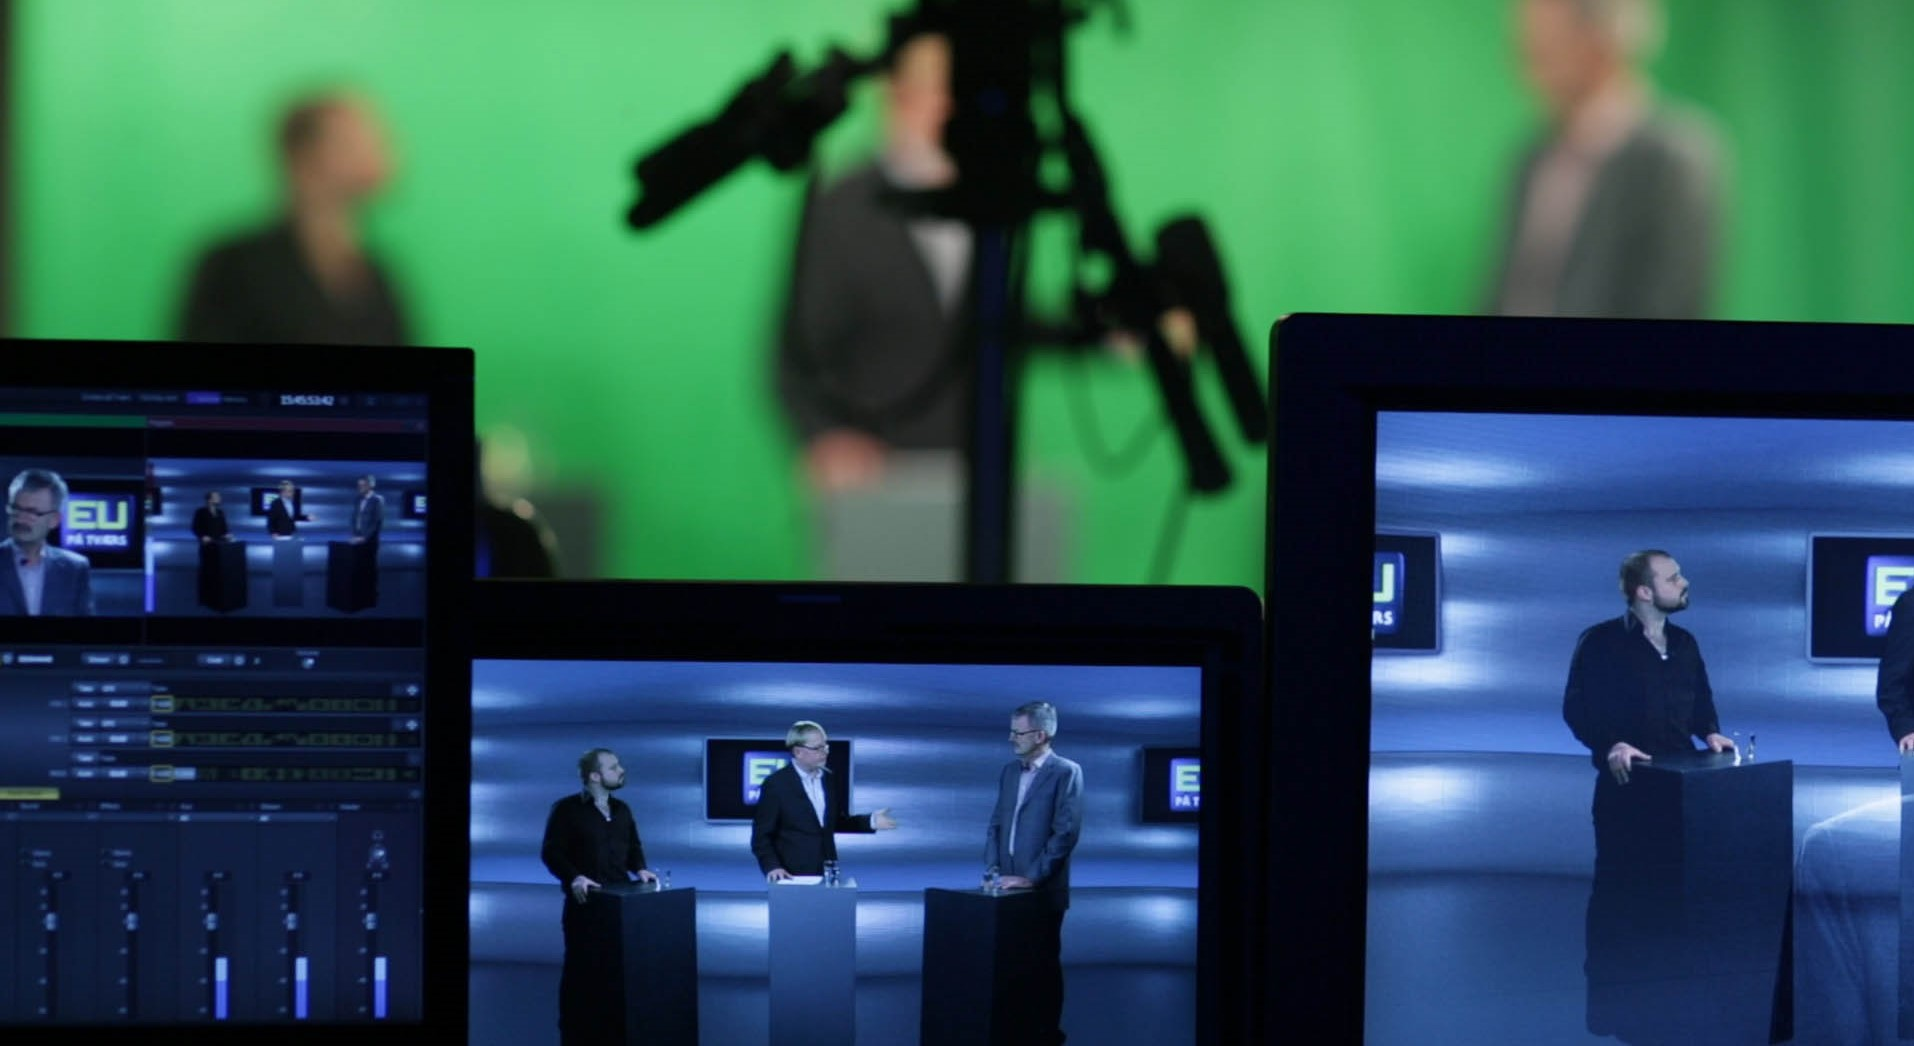 Green screen live streaming photo by Wikimedia Commons header